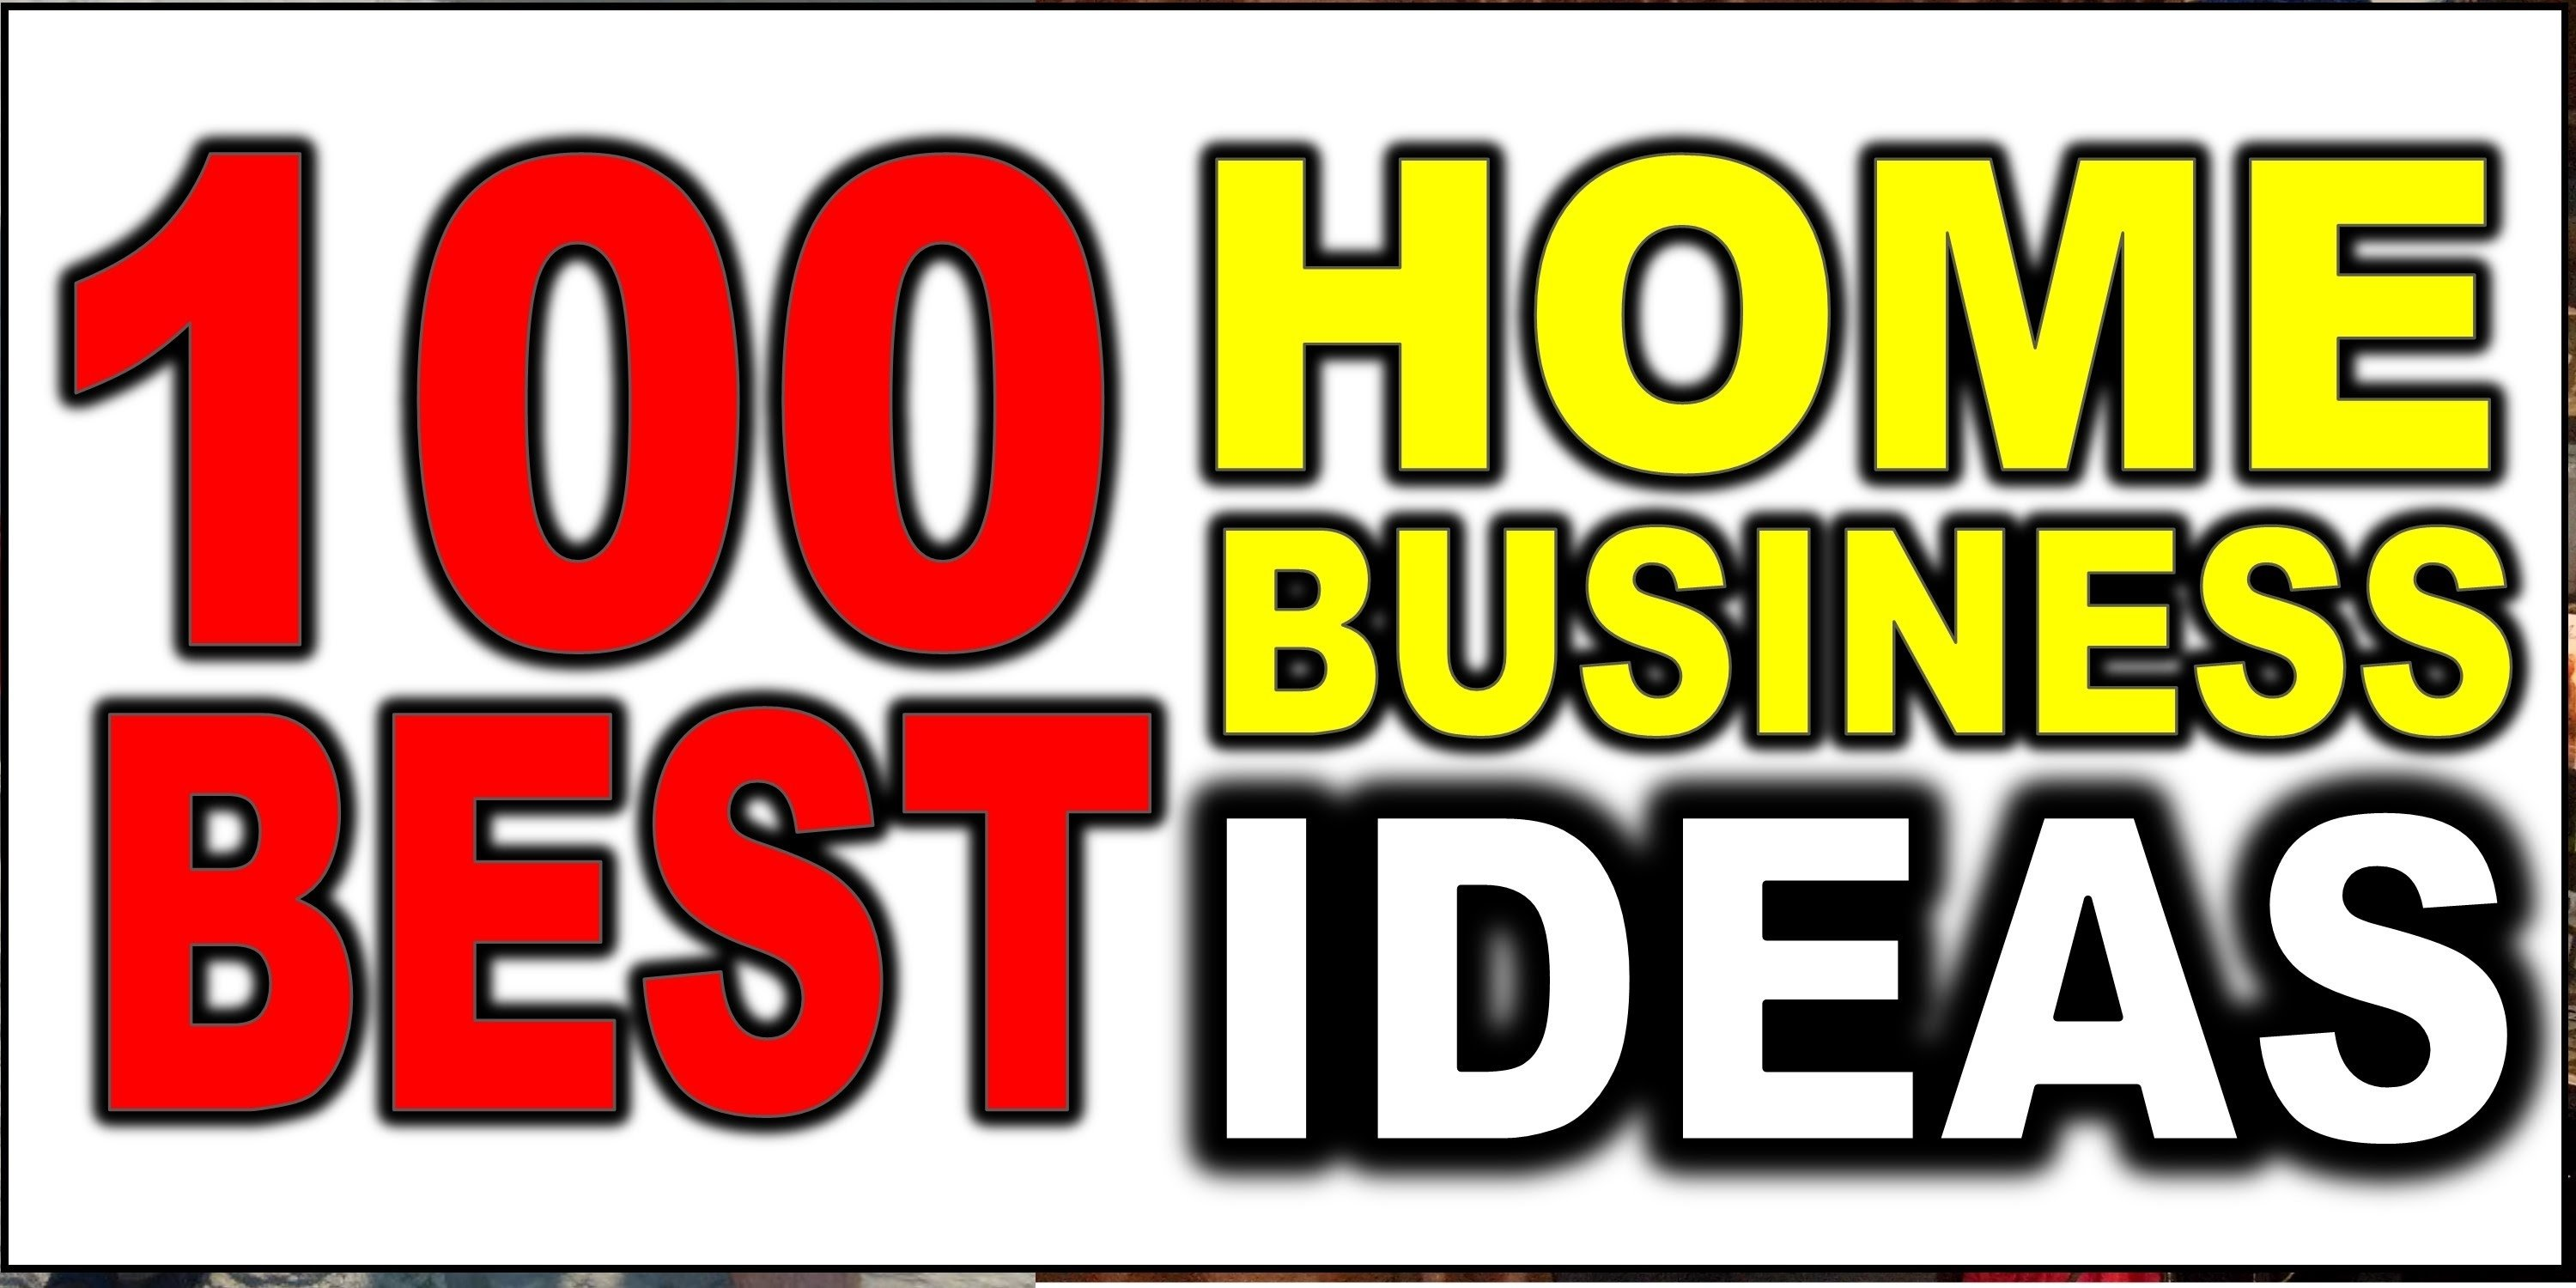 10 Gorgeous Good Ideas For A Business 100 work from home business ideas youtube 2021